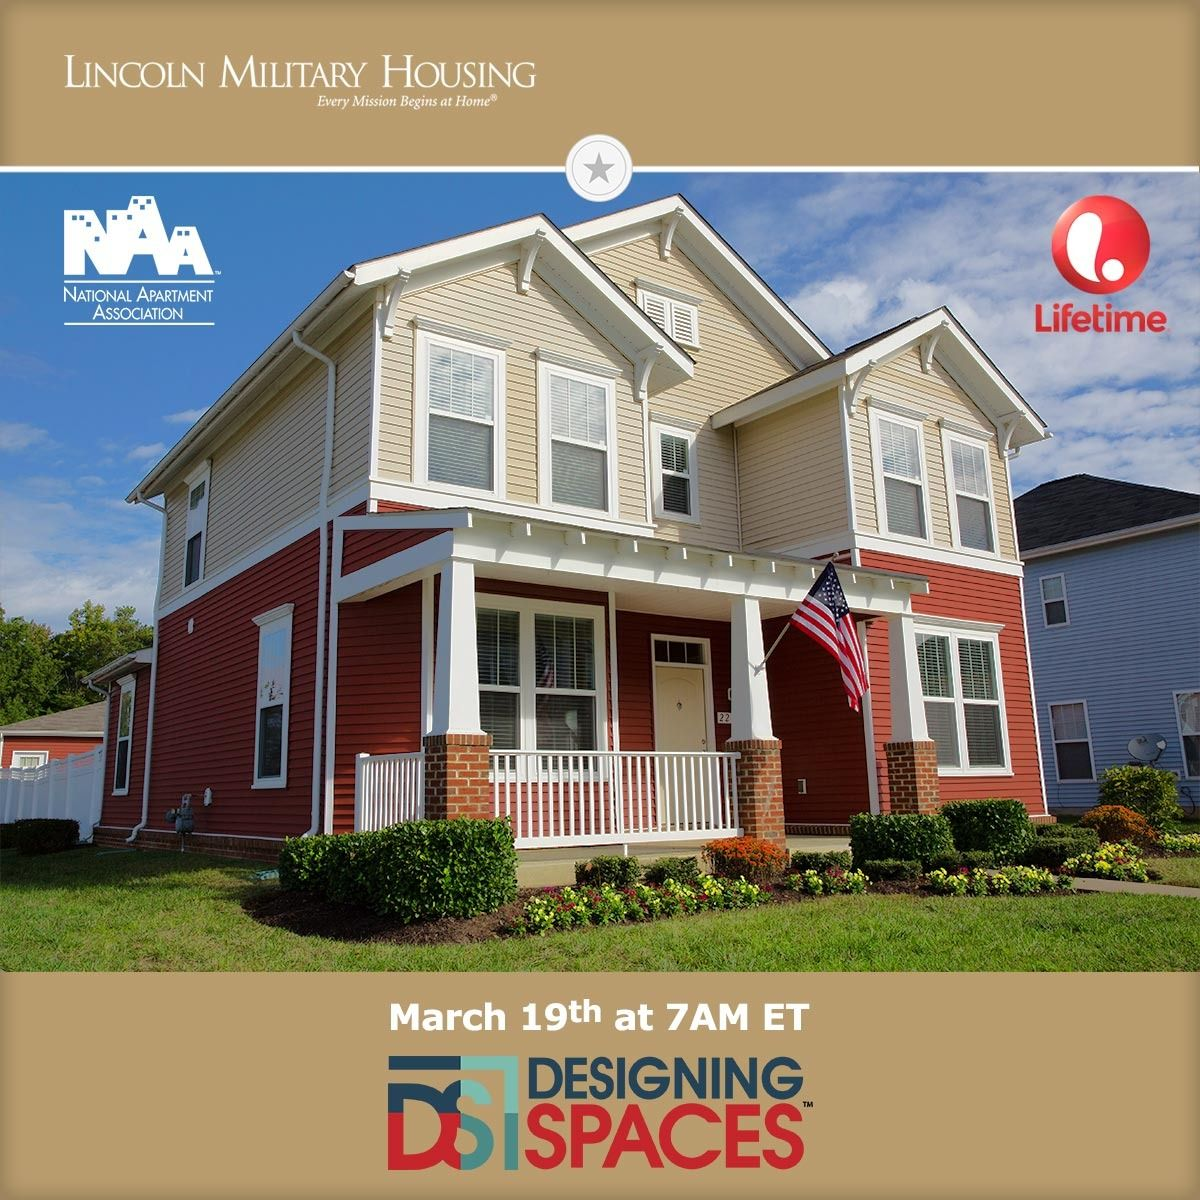 Designing Spaces Features Lincoln Military Housing